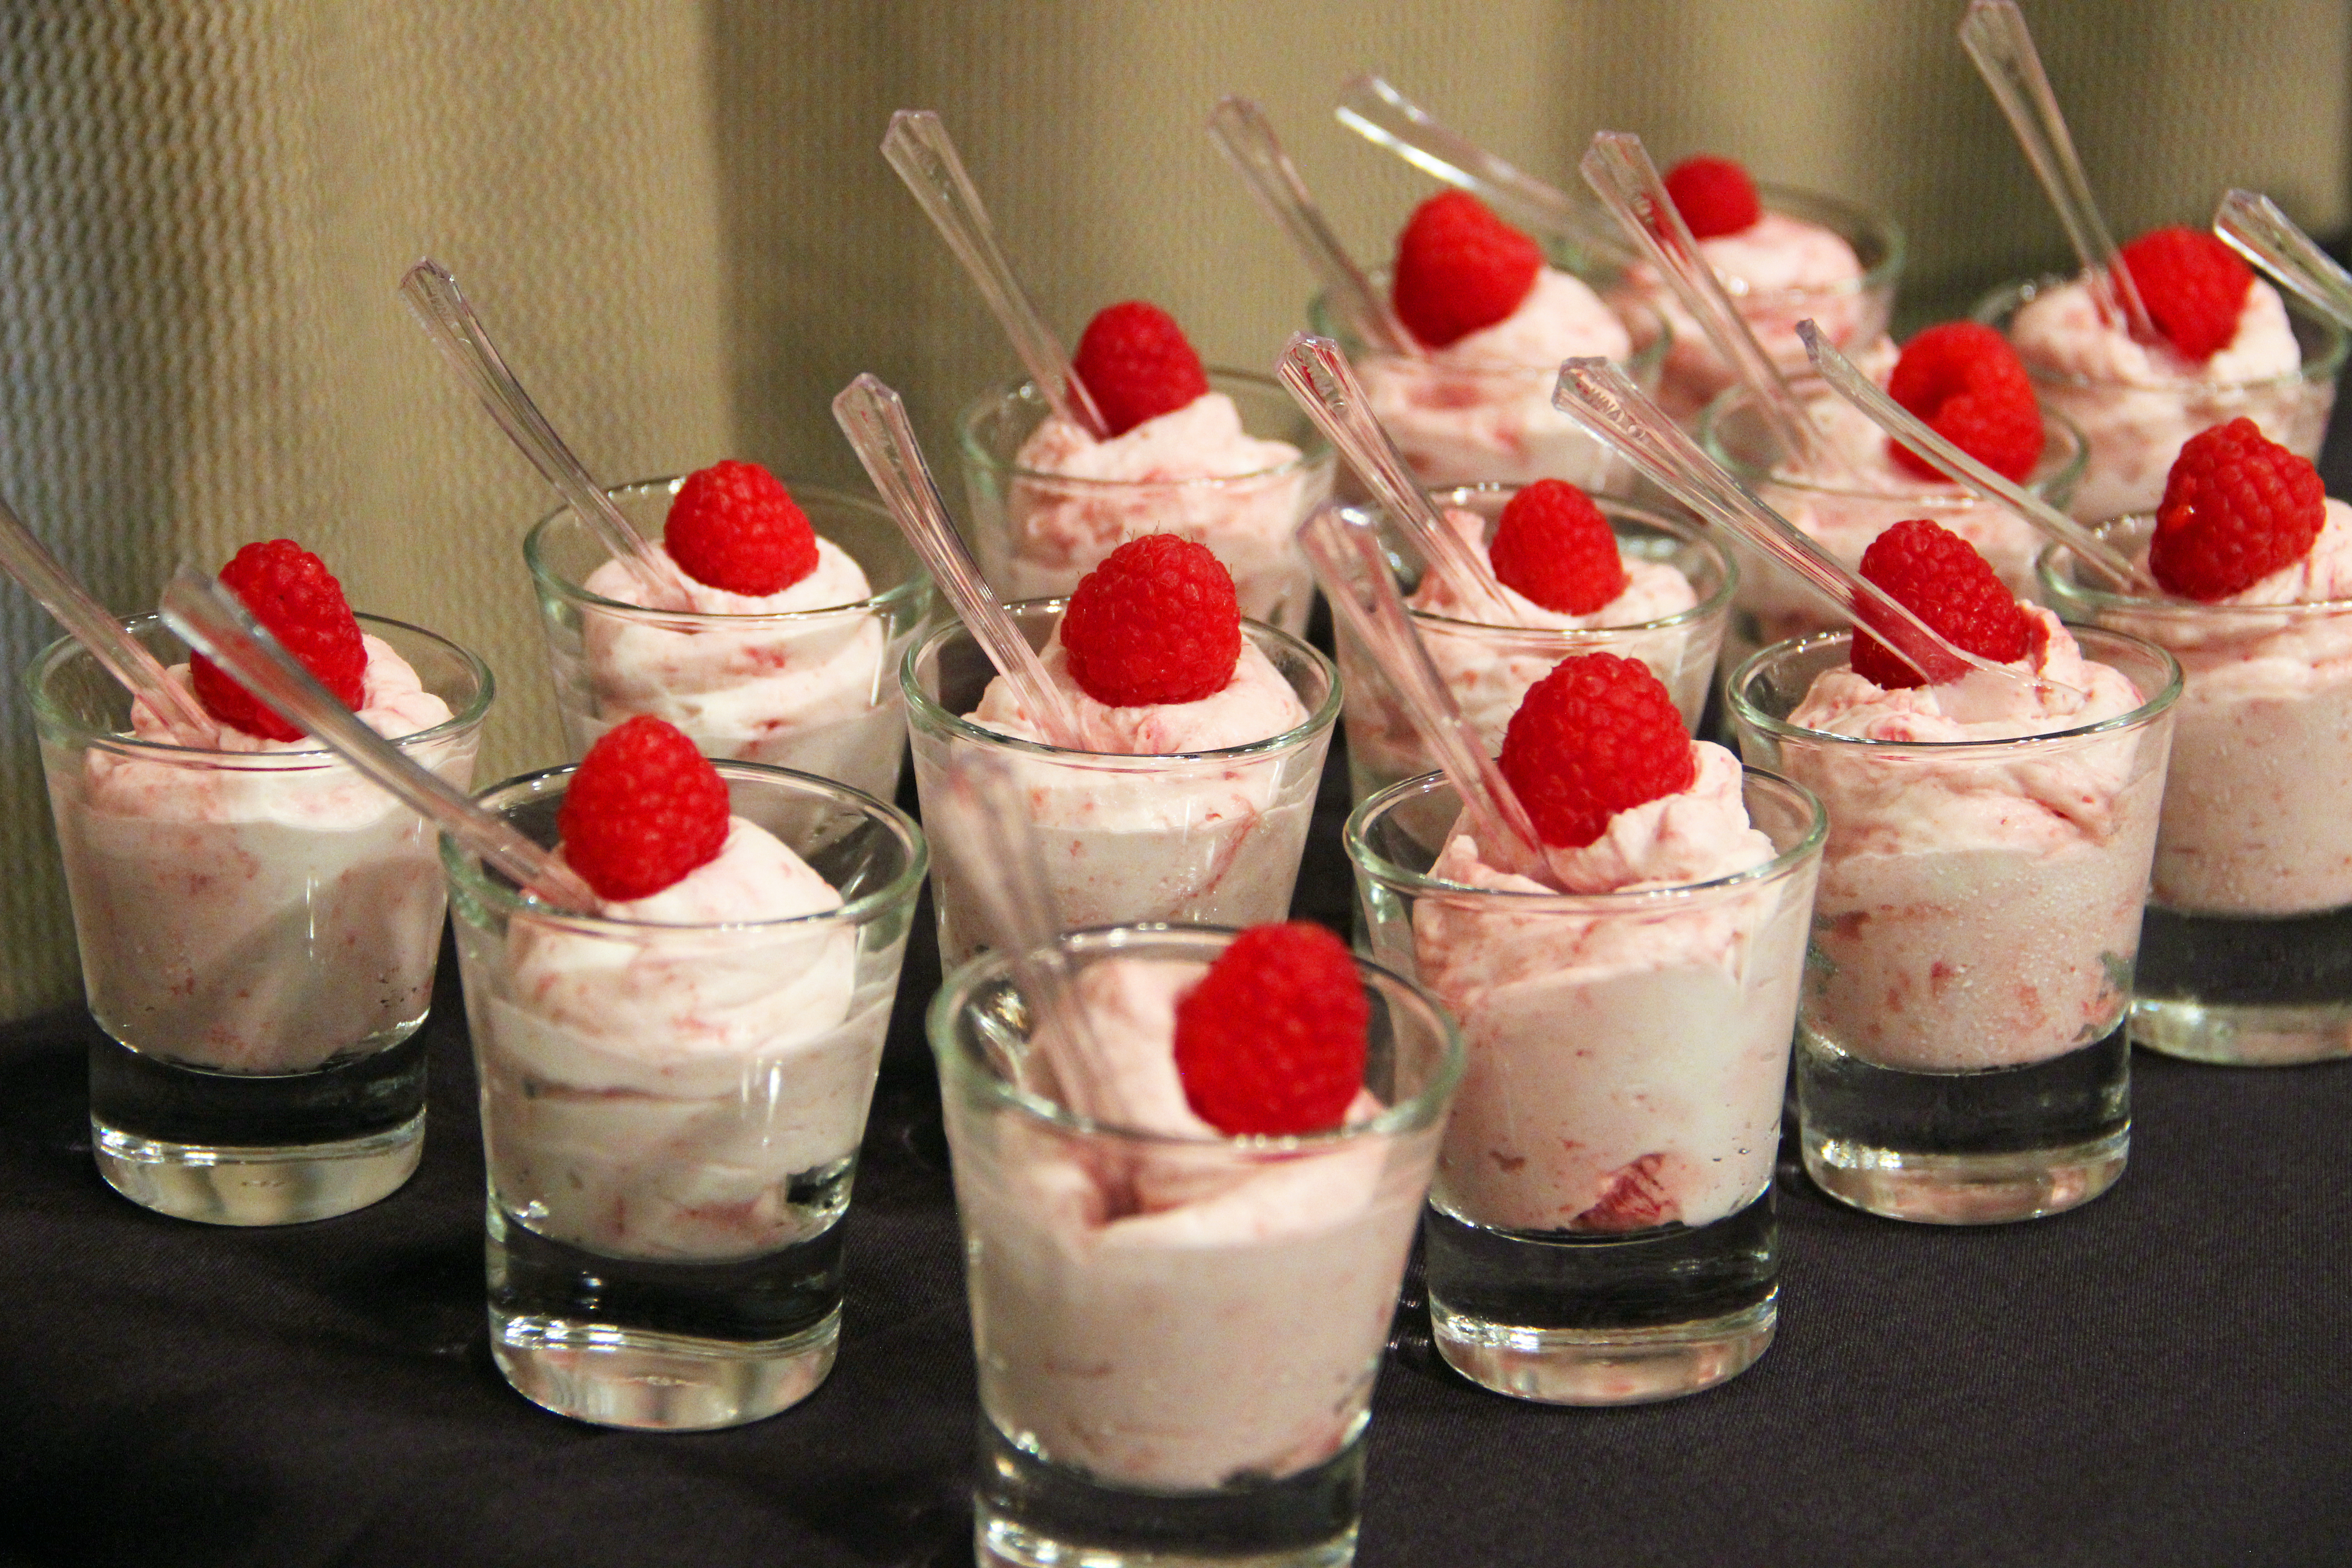 Strawbery Mousse Shooter